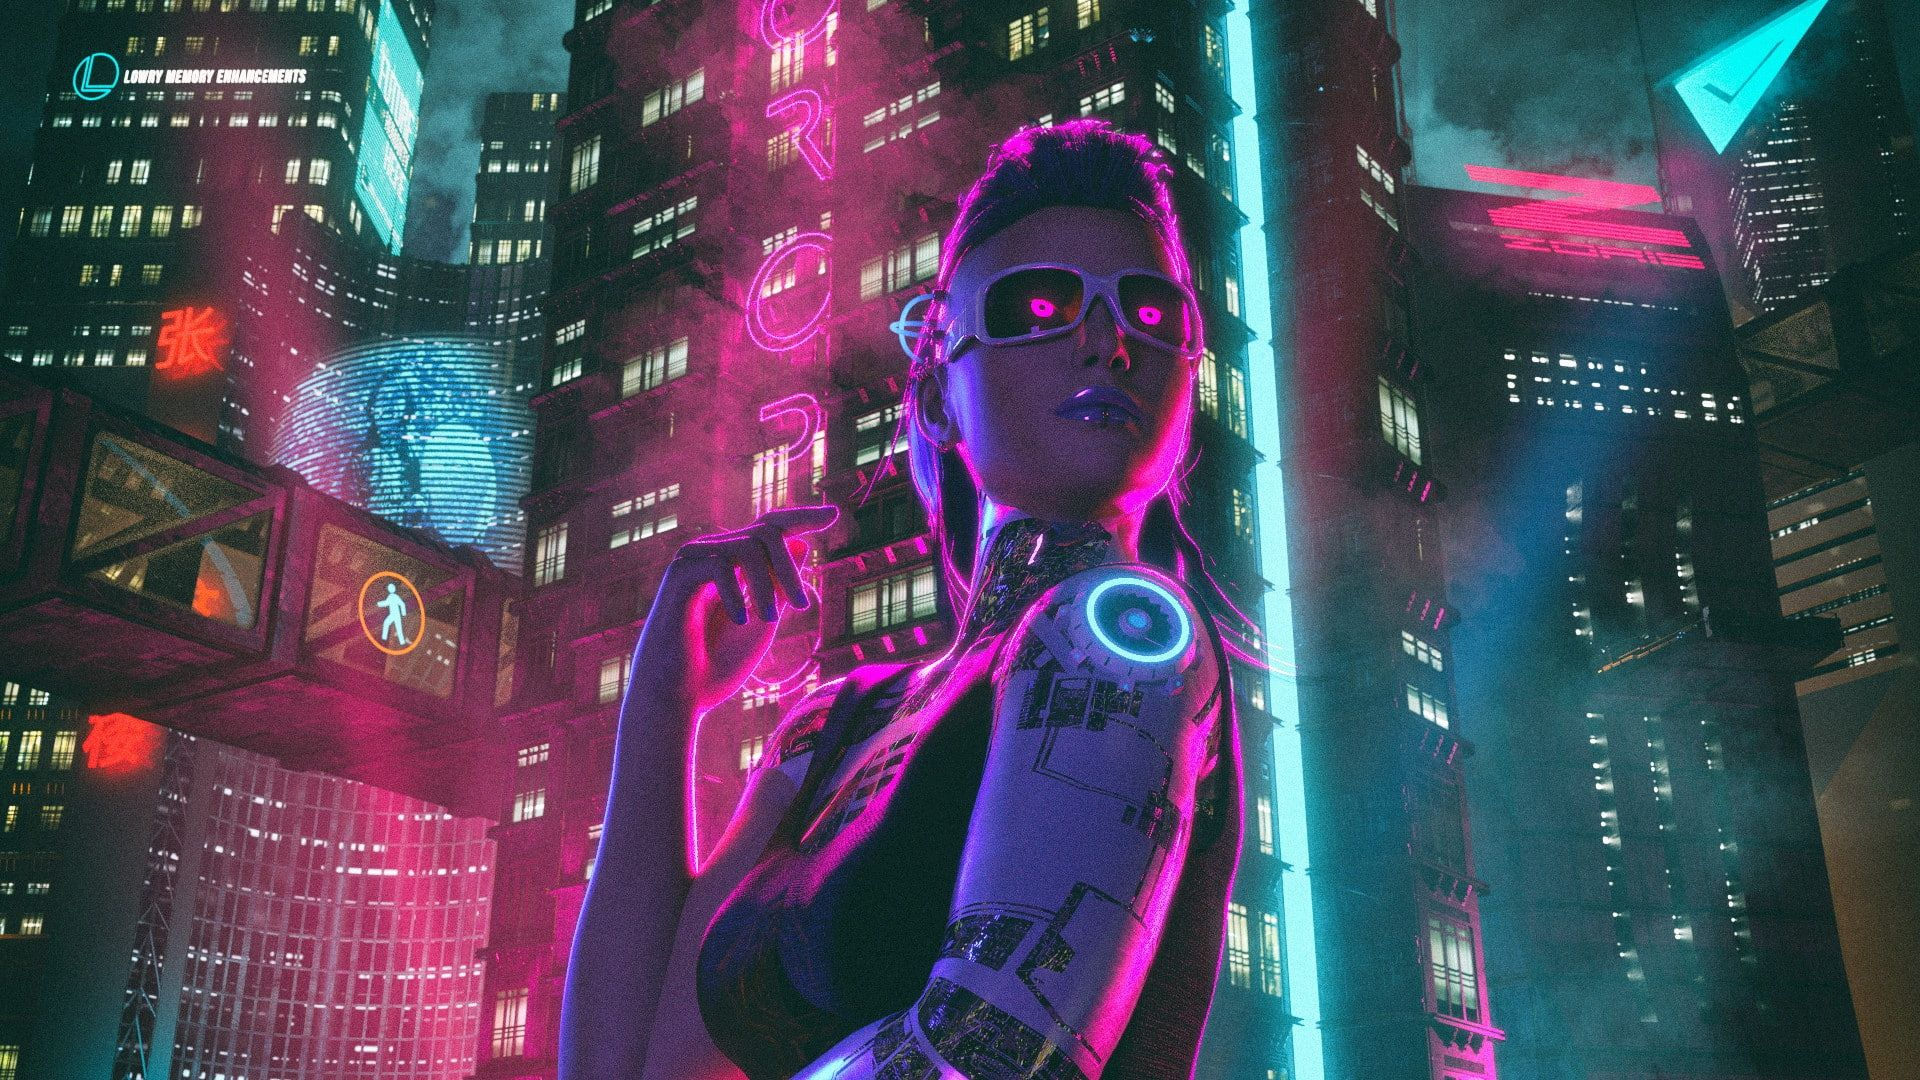 Synthwave Cyberpunk Artwork Futuristic David Legnon 1080p Wallpaper Hdwallpaper Desktop In 2020 Cyberpunk Synthwave Cyberpunk Art